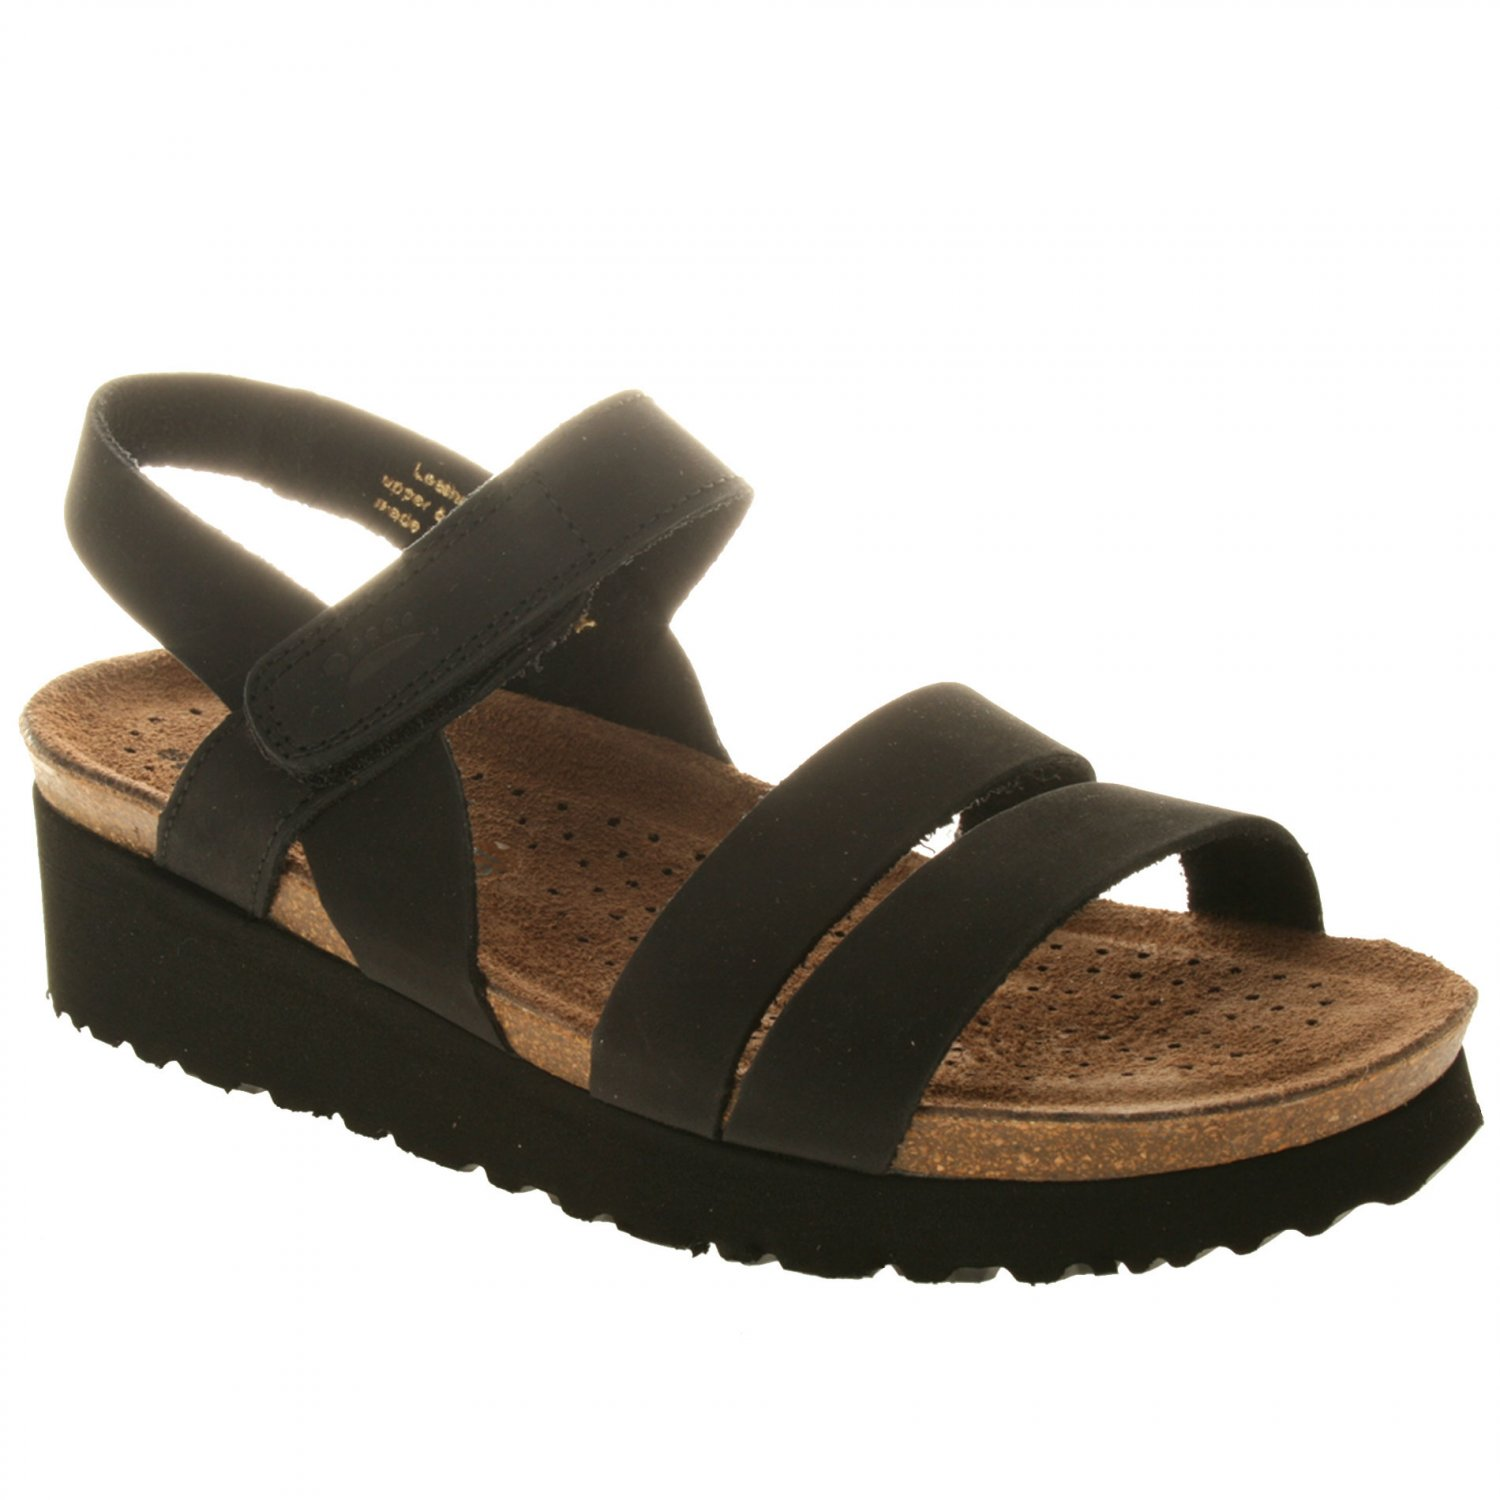 Spring Step SKY Sandals Shoes All Sizes & Colors $89.99